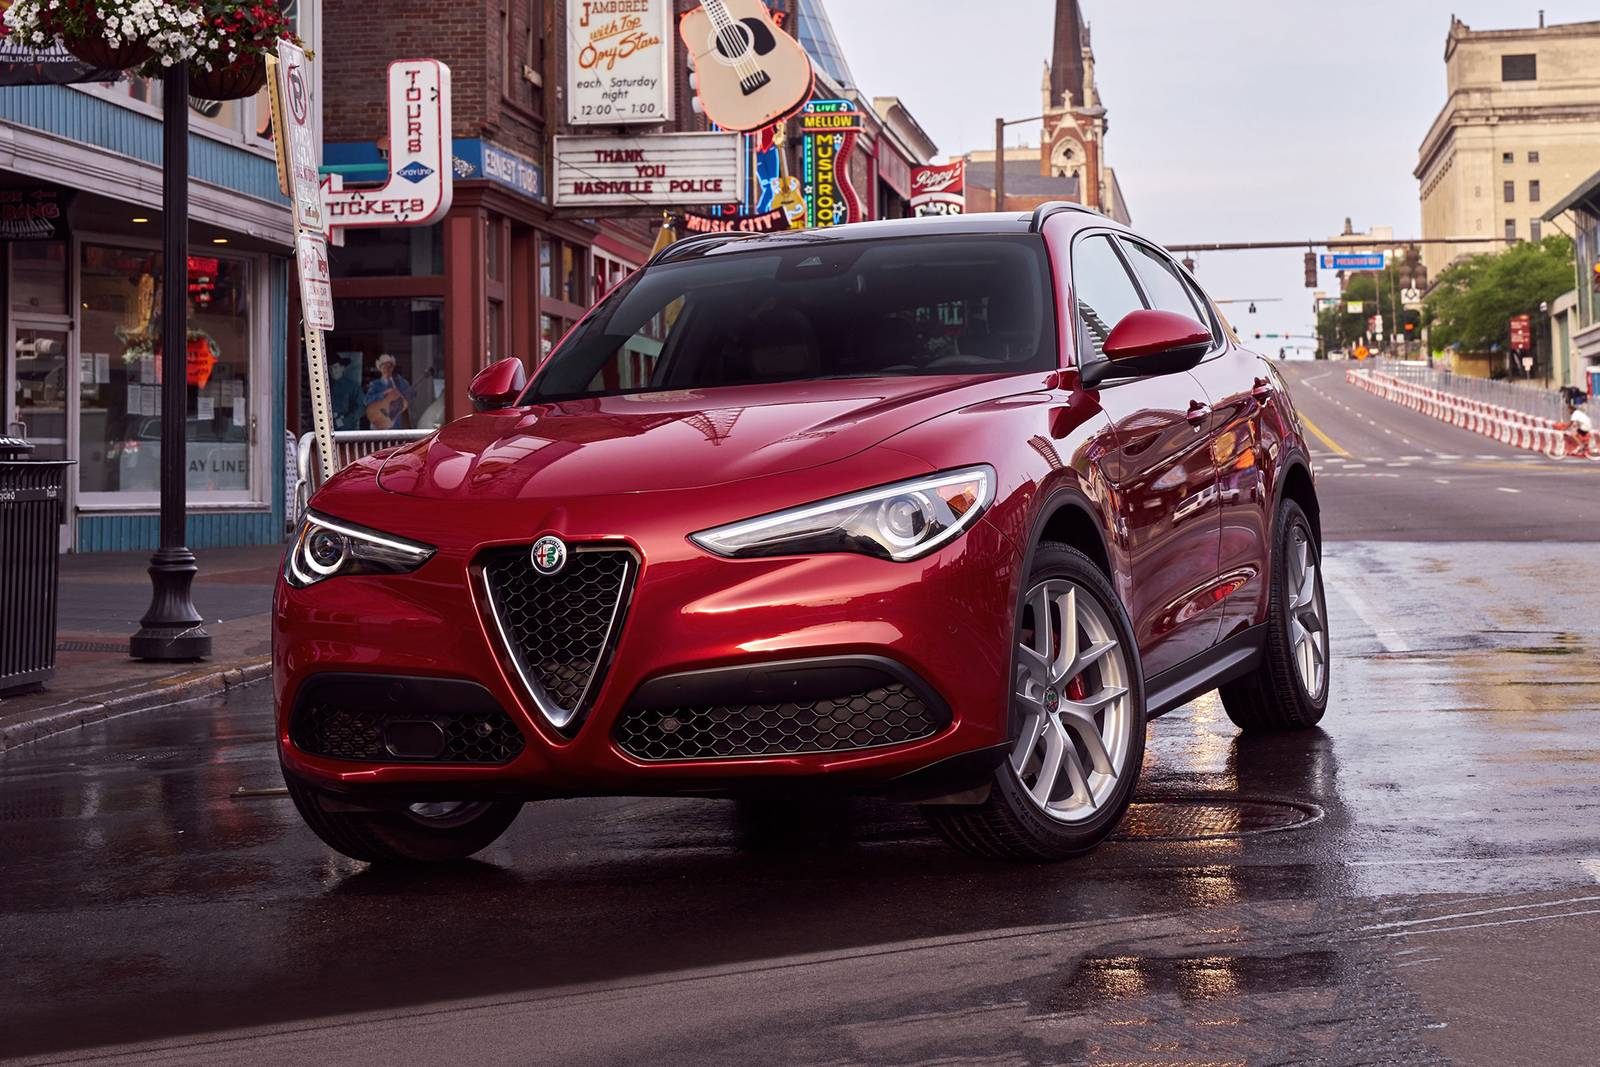 2019 alfa romeo stelvio for lease autolux sales leasing. Black Bedroom Furniture Sets. Home Design Ideas